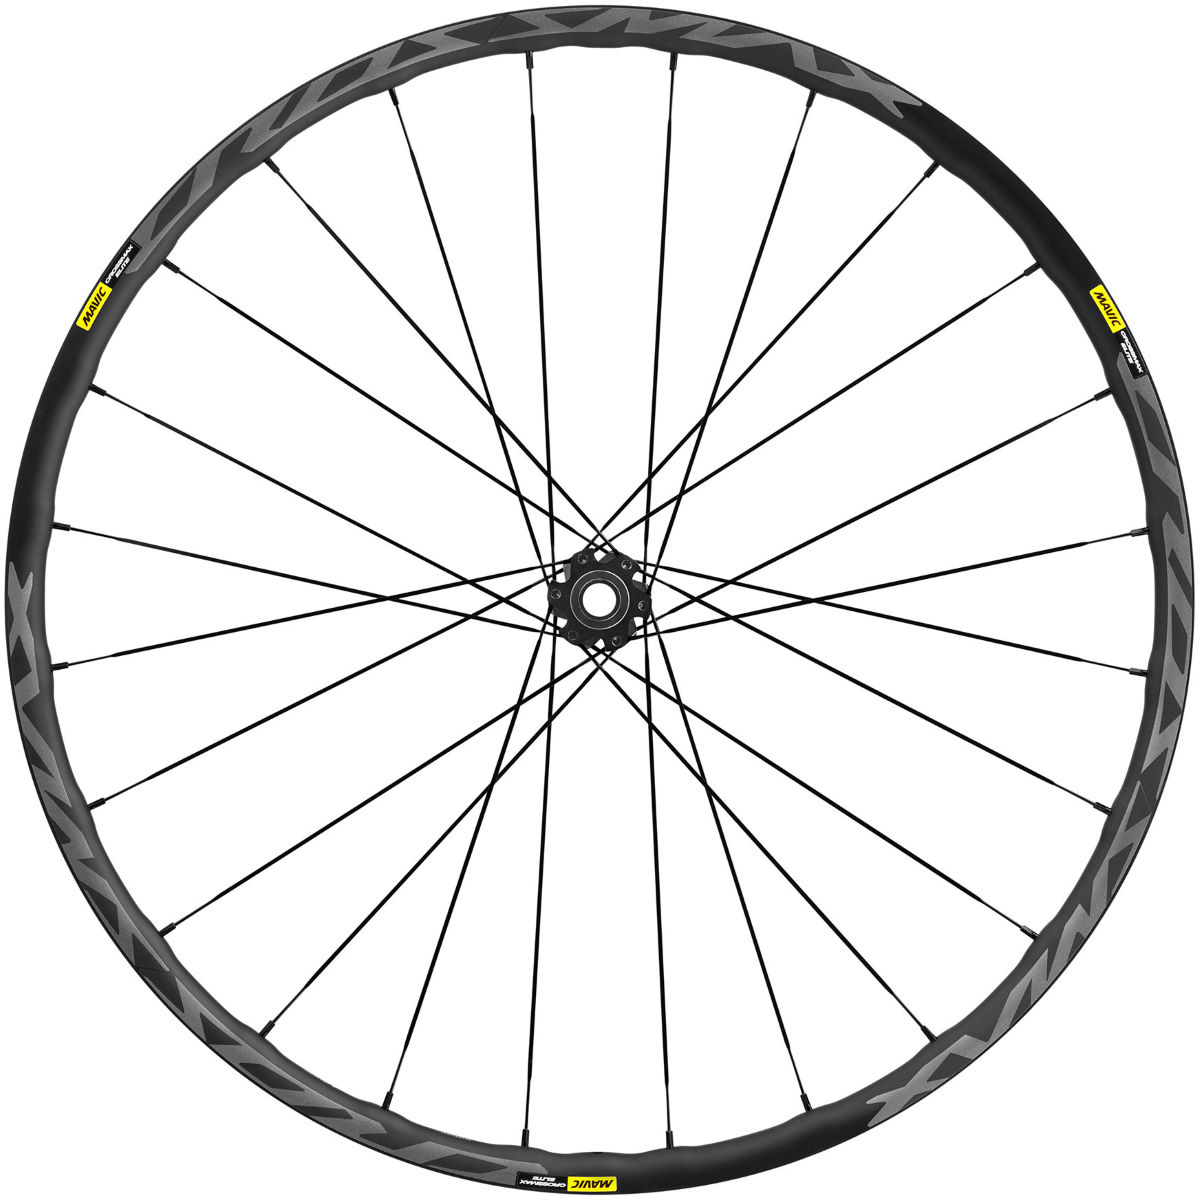 Mavic Crossmax Elite Front Wheel - Front wheels